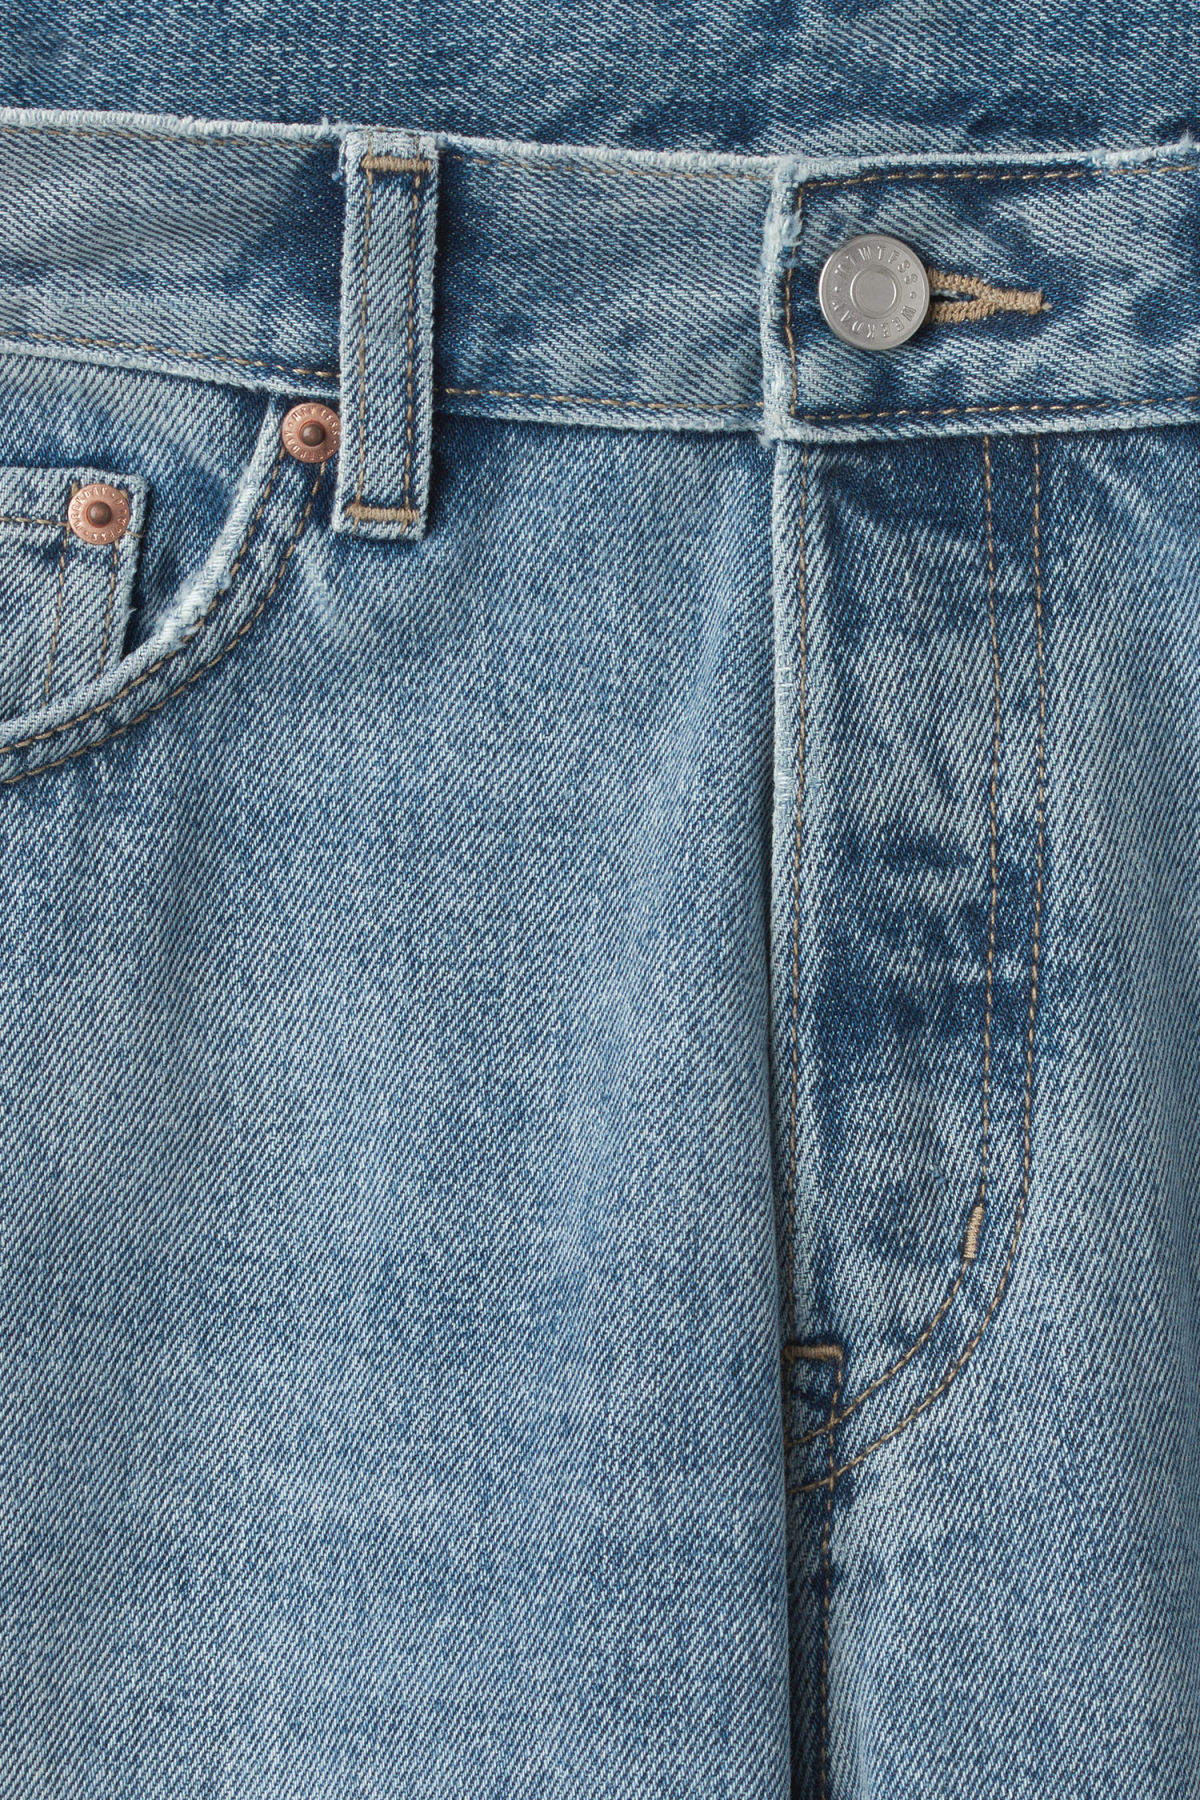 Detailed image of Weekday vacant wow blue jeans in blue